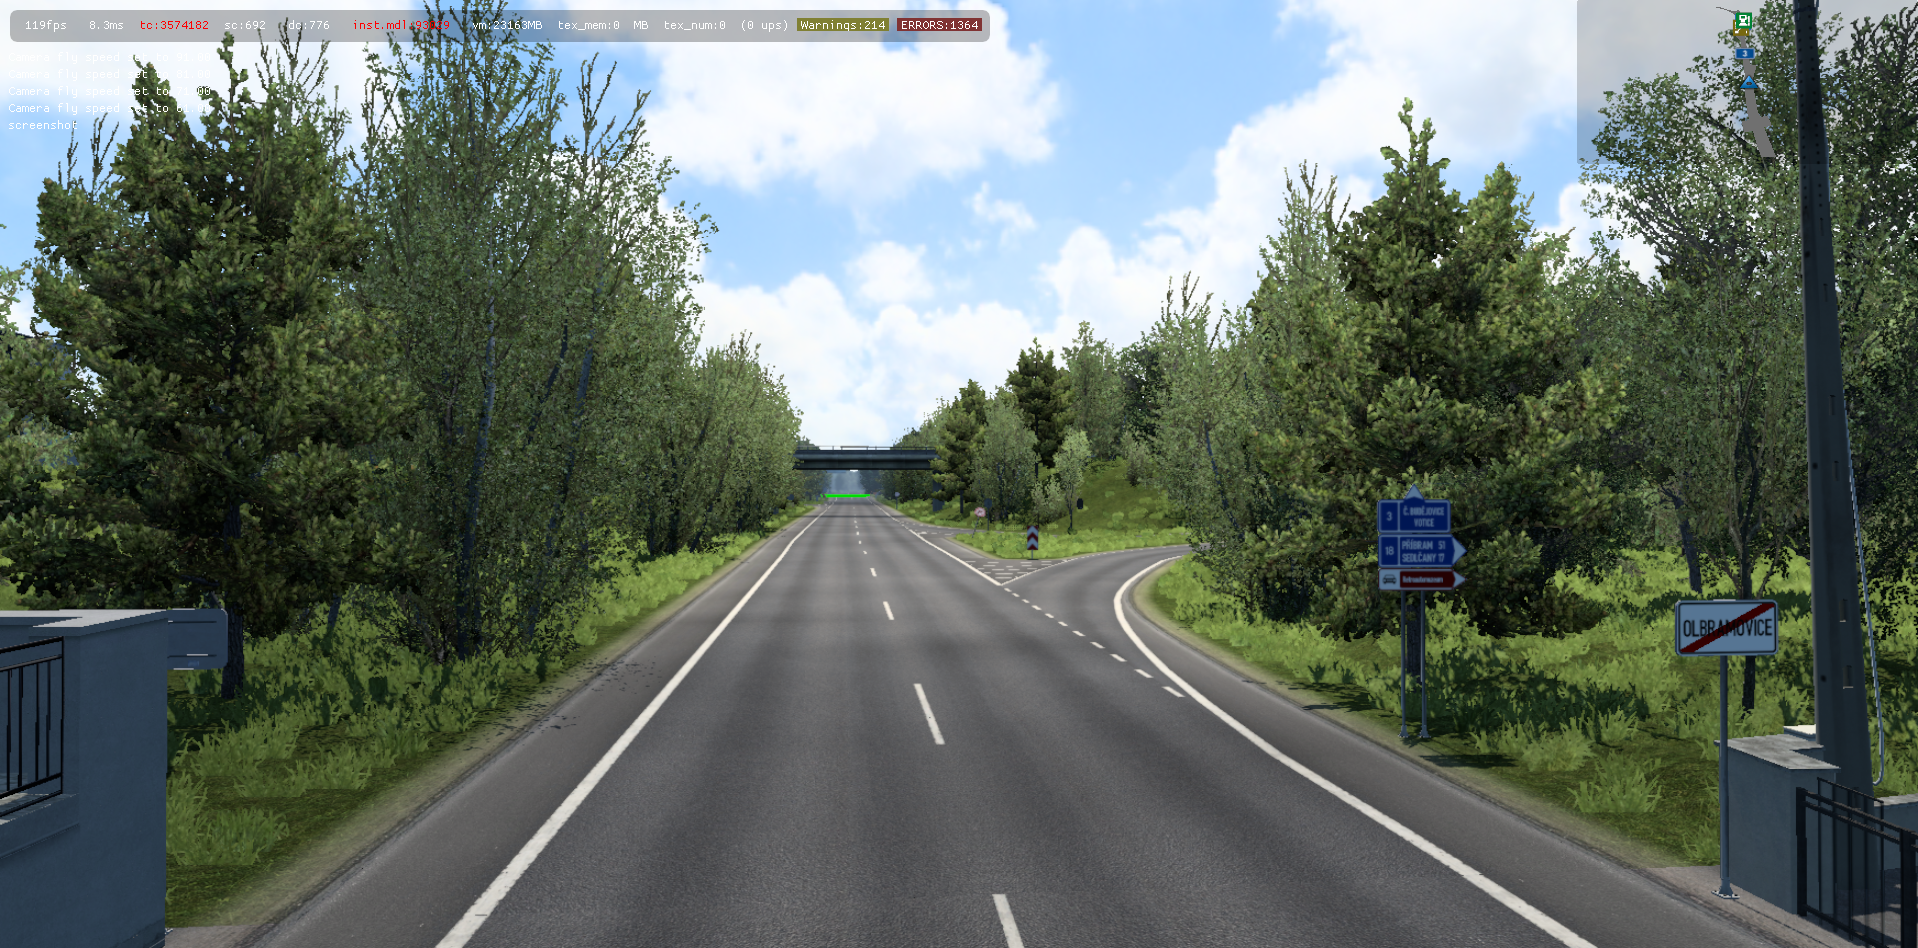 ets2_20210810_151455_00.png